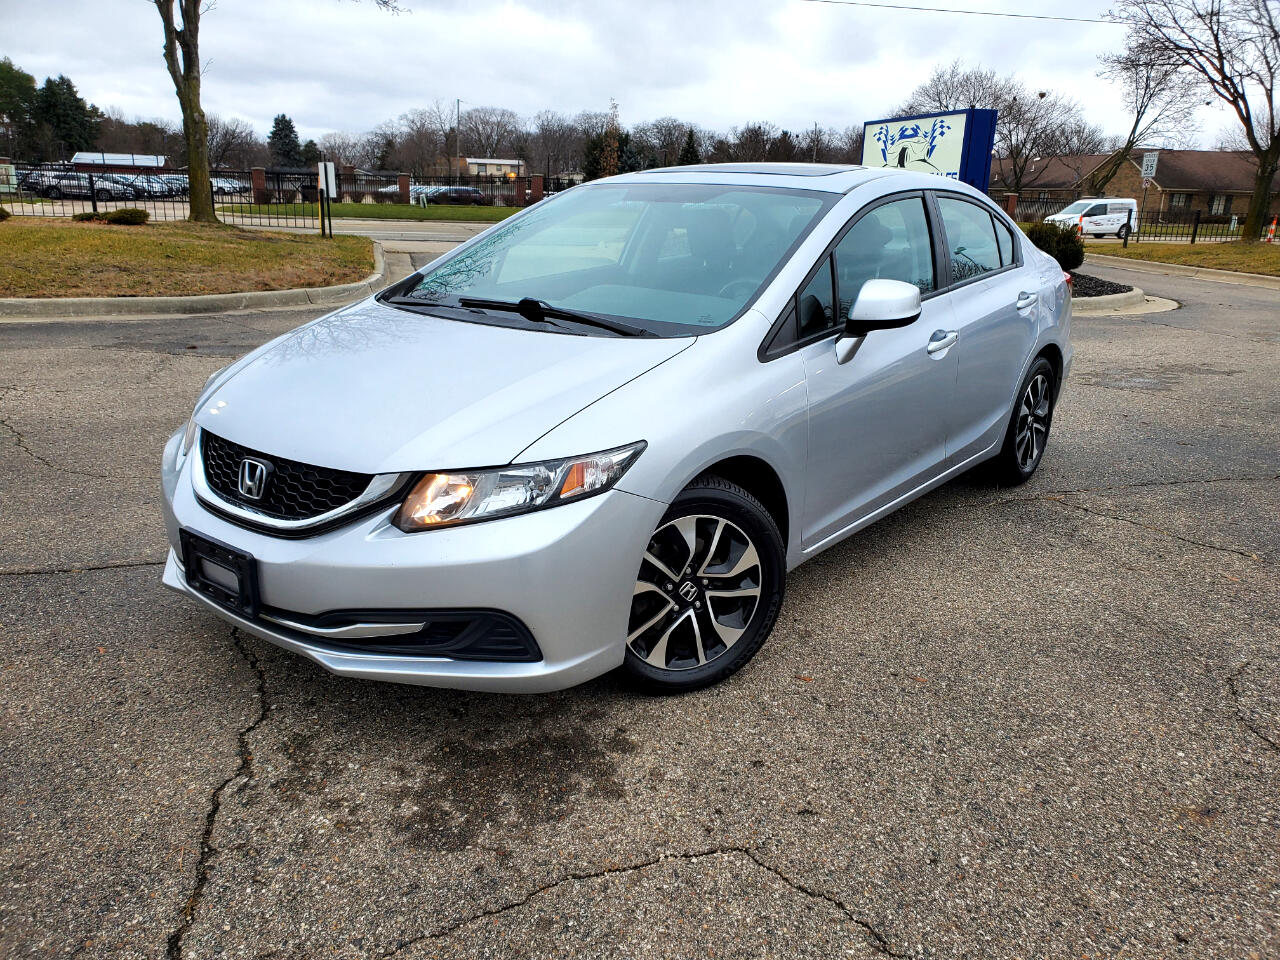 Honda Civic EX Sedan 5-Speed AT 2013